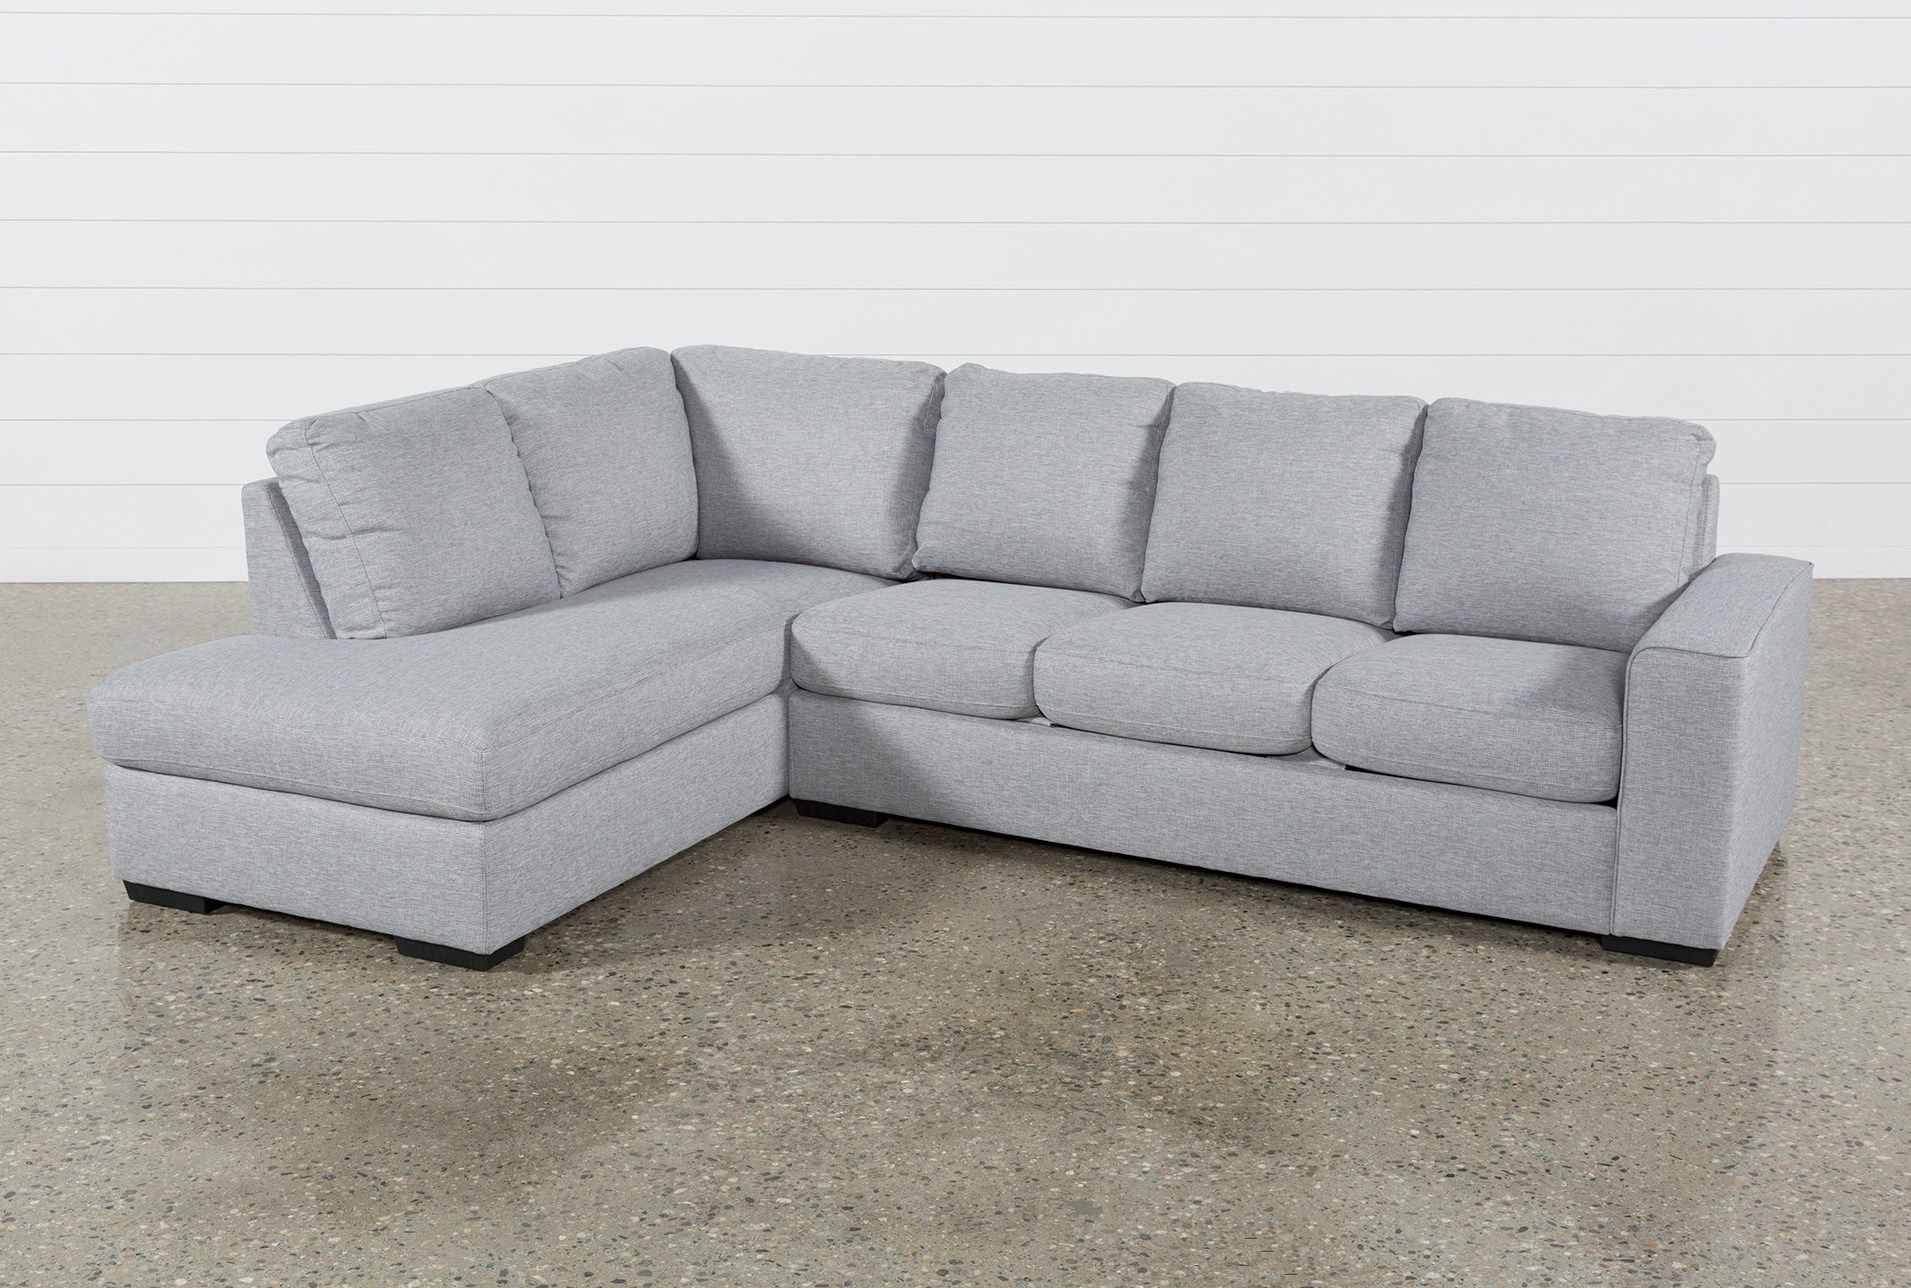 Lucy Grey 2 Piece Sectional W/laf Chaise   Tx House   Pinterest With Aquarius Dark Grey 2 Piece Sectionals With Raf Chaise (Image 19 of 30)